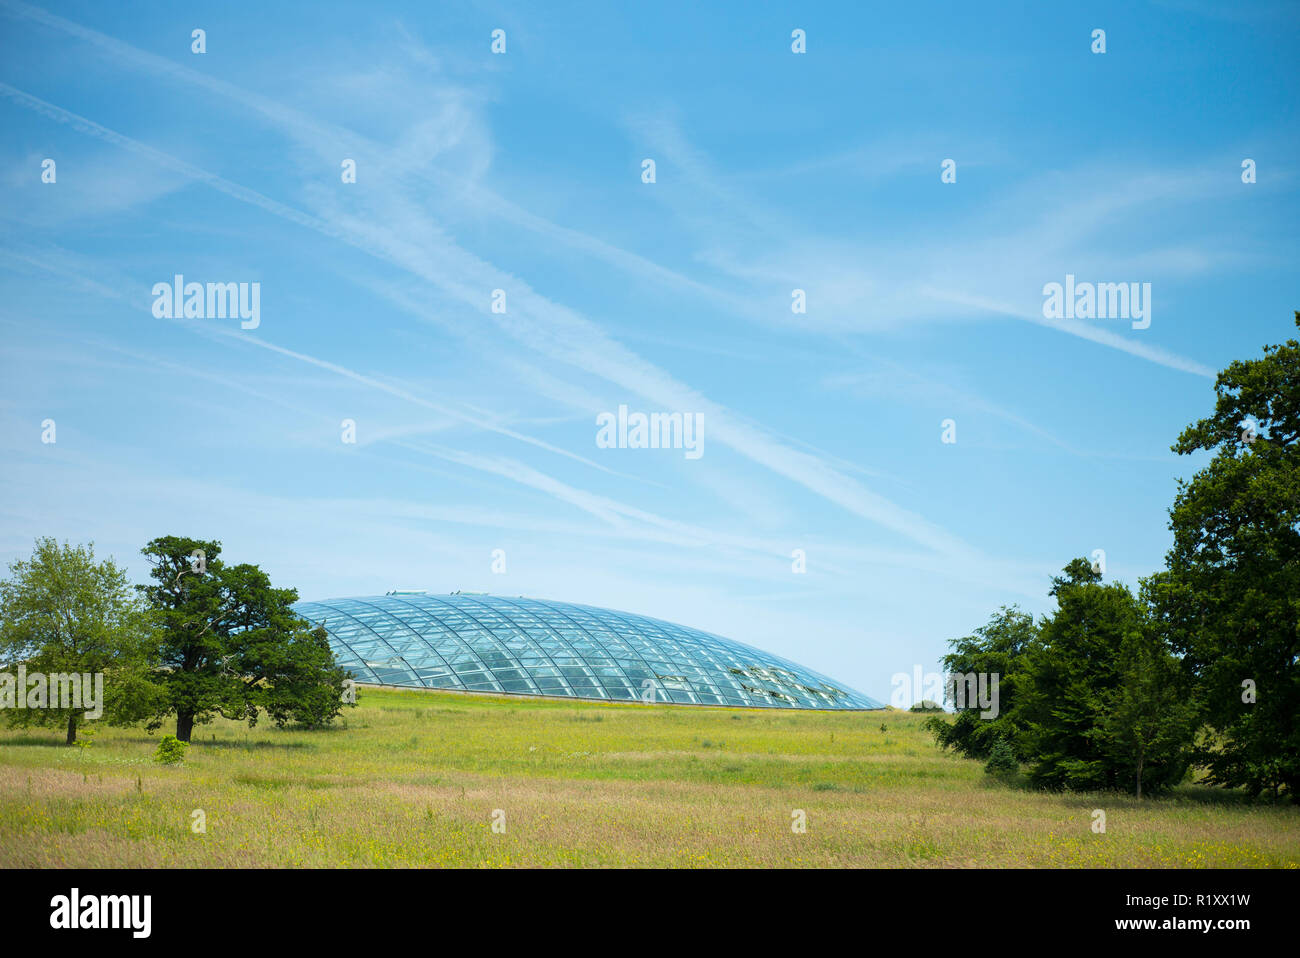 Dome shaped glass roof of The Great Glasshouse of the National Botanic Garden of Wales in Carmarthenshire, UK - Stock Image